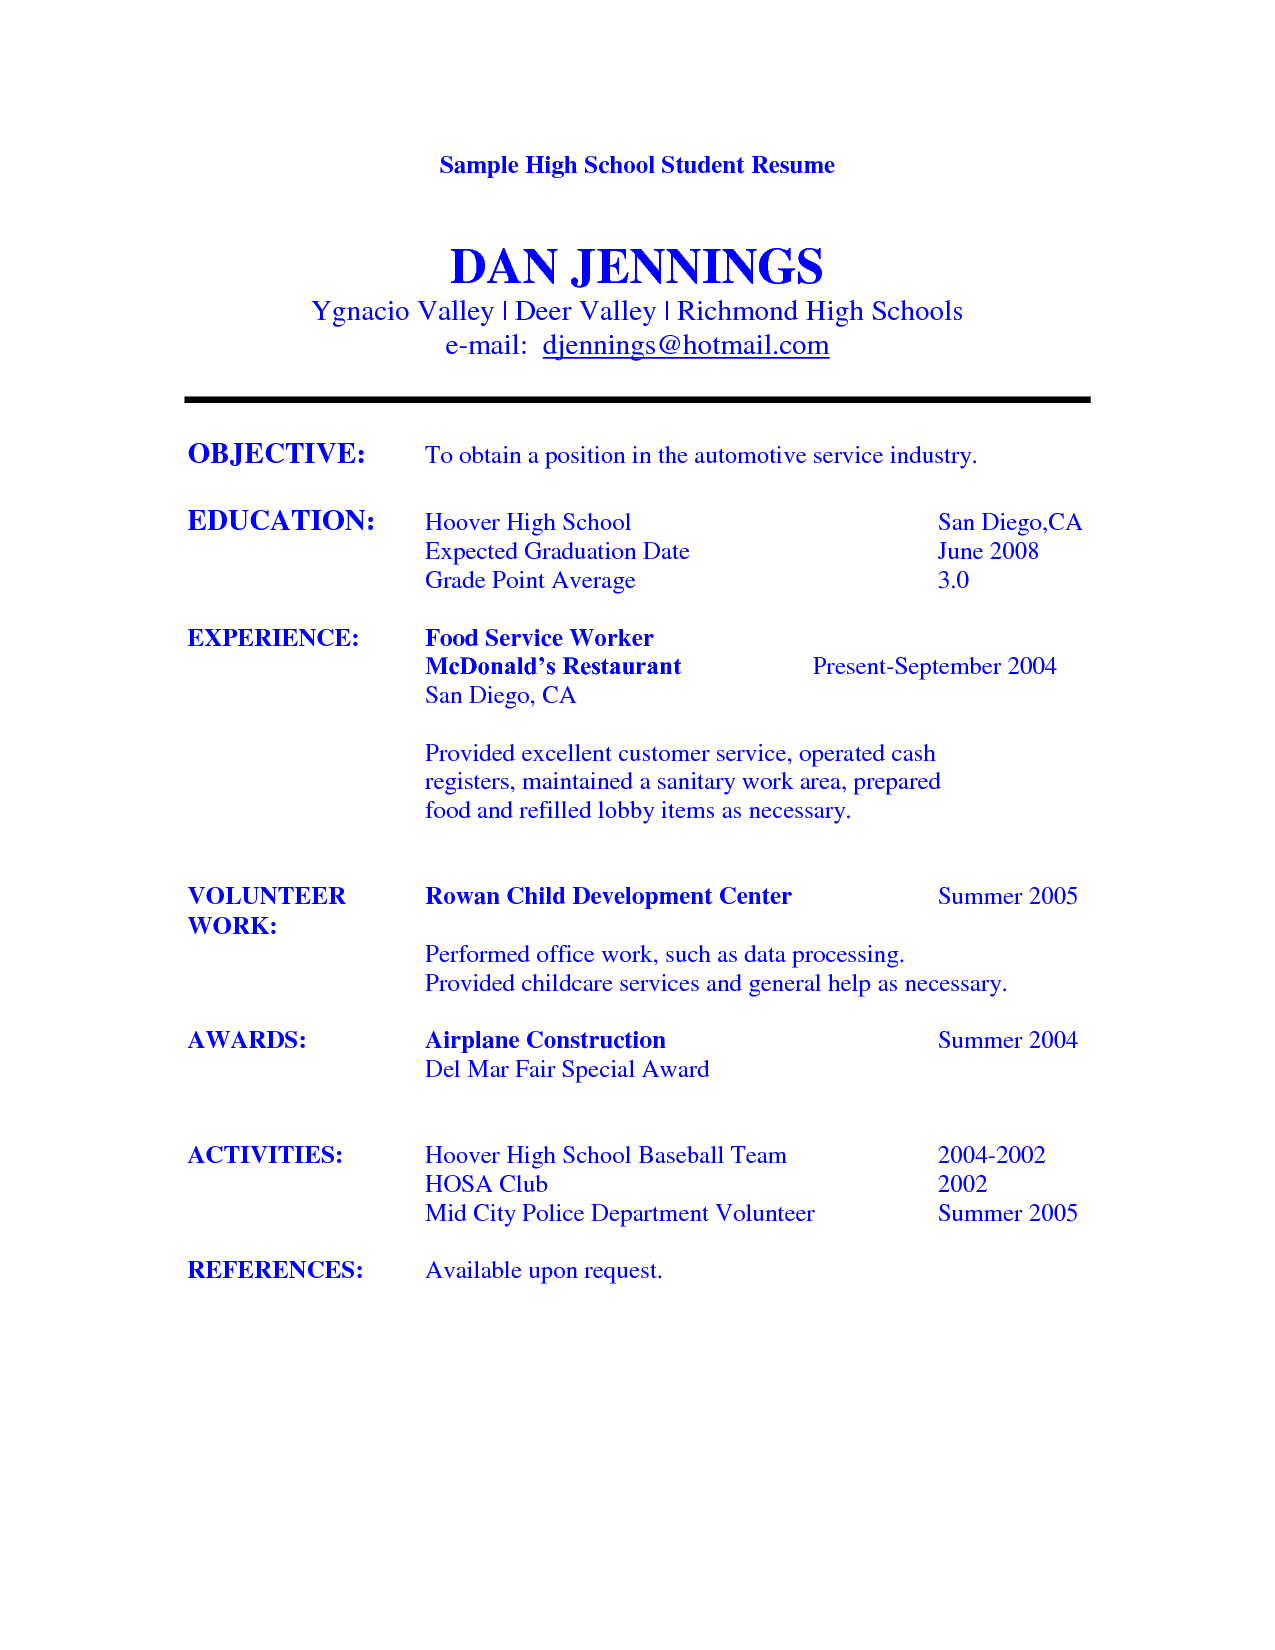 Sample Student Resume Resume Example For High School Student Sample Resumes  Httpwww